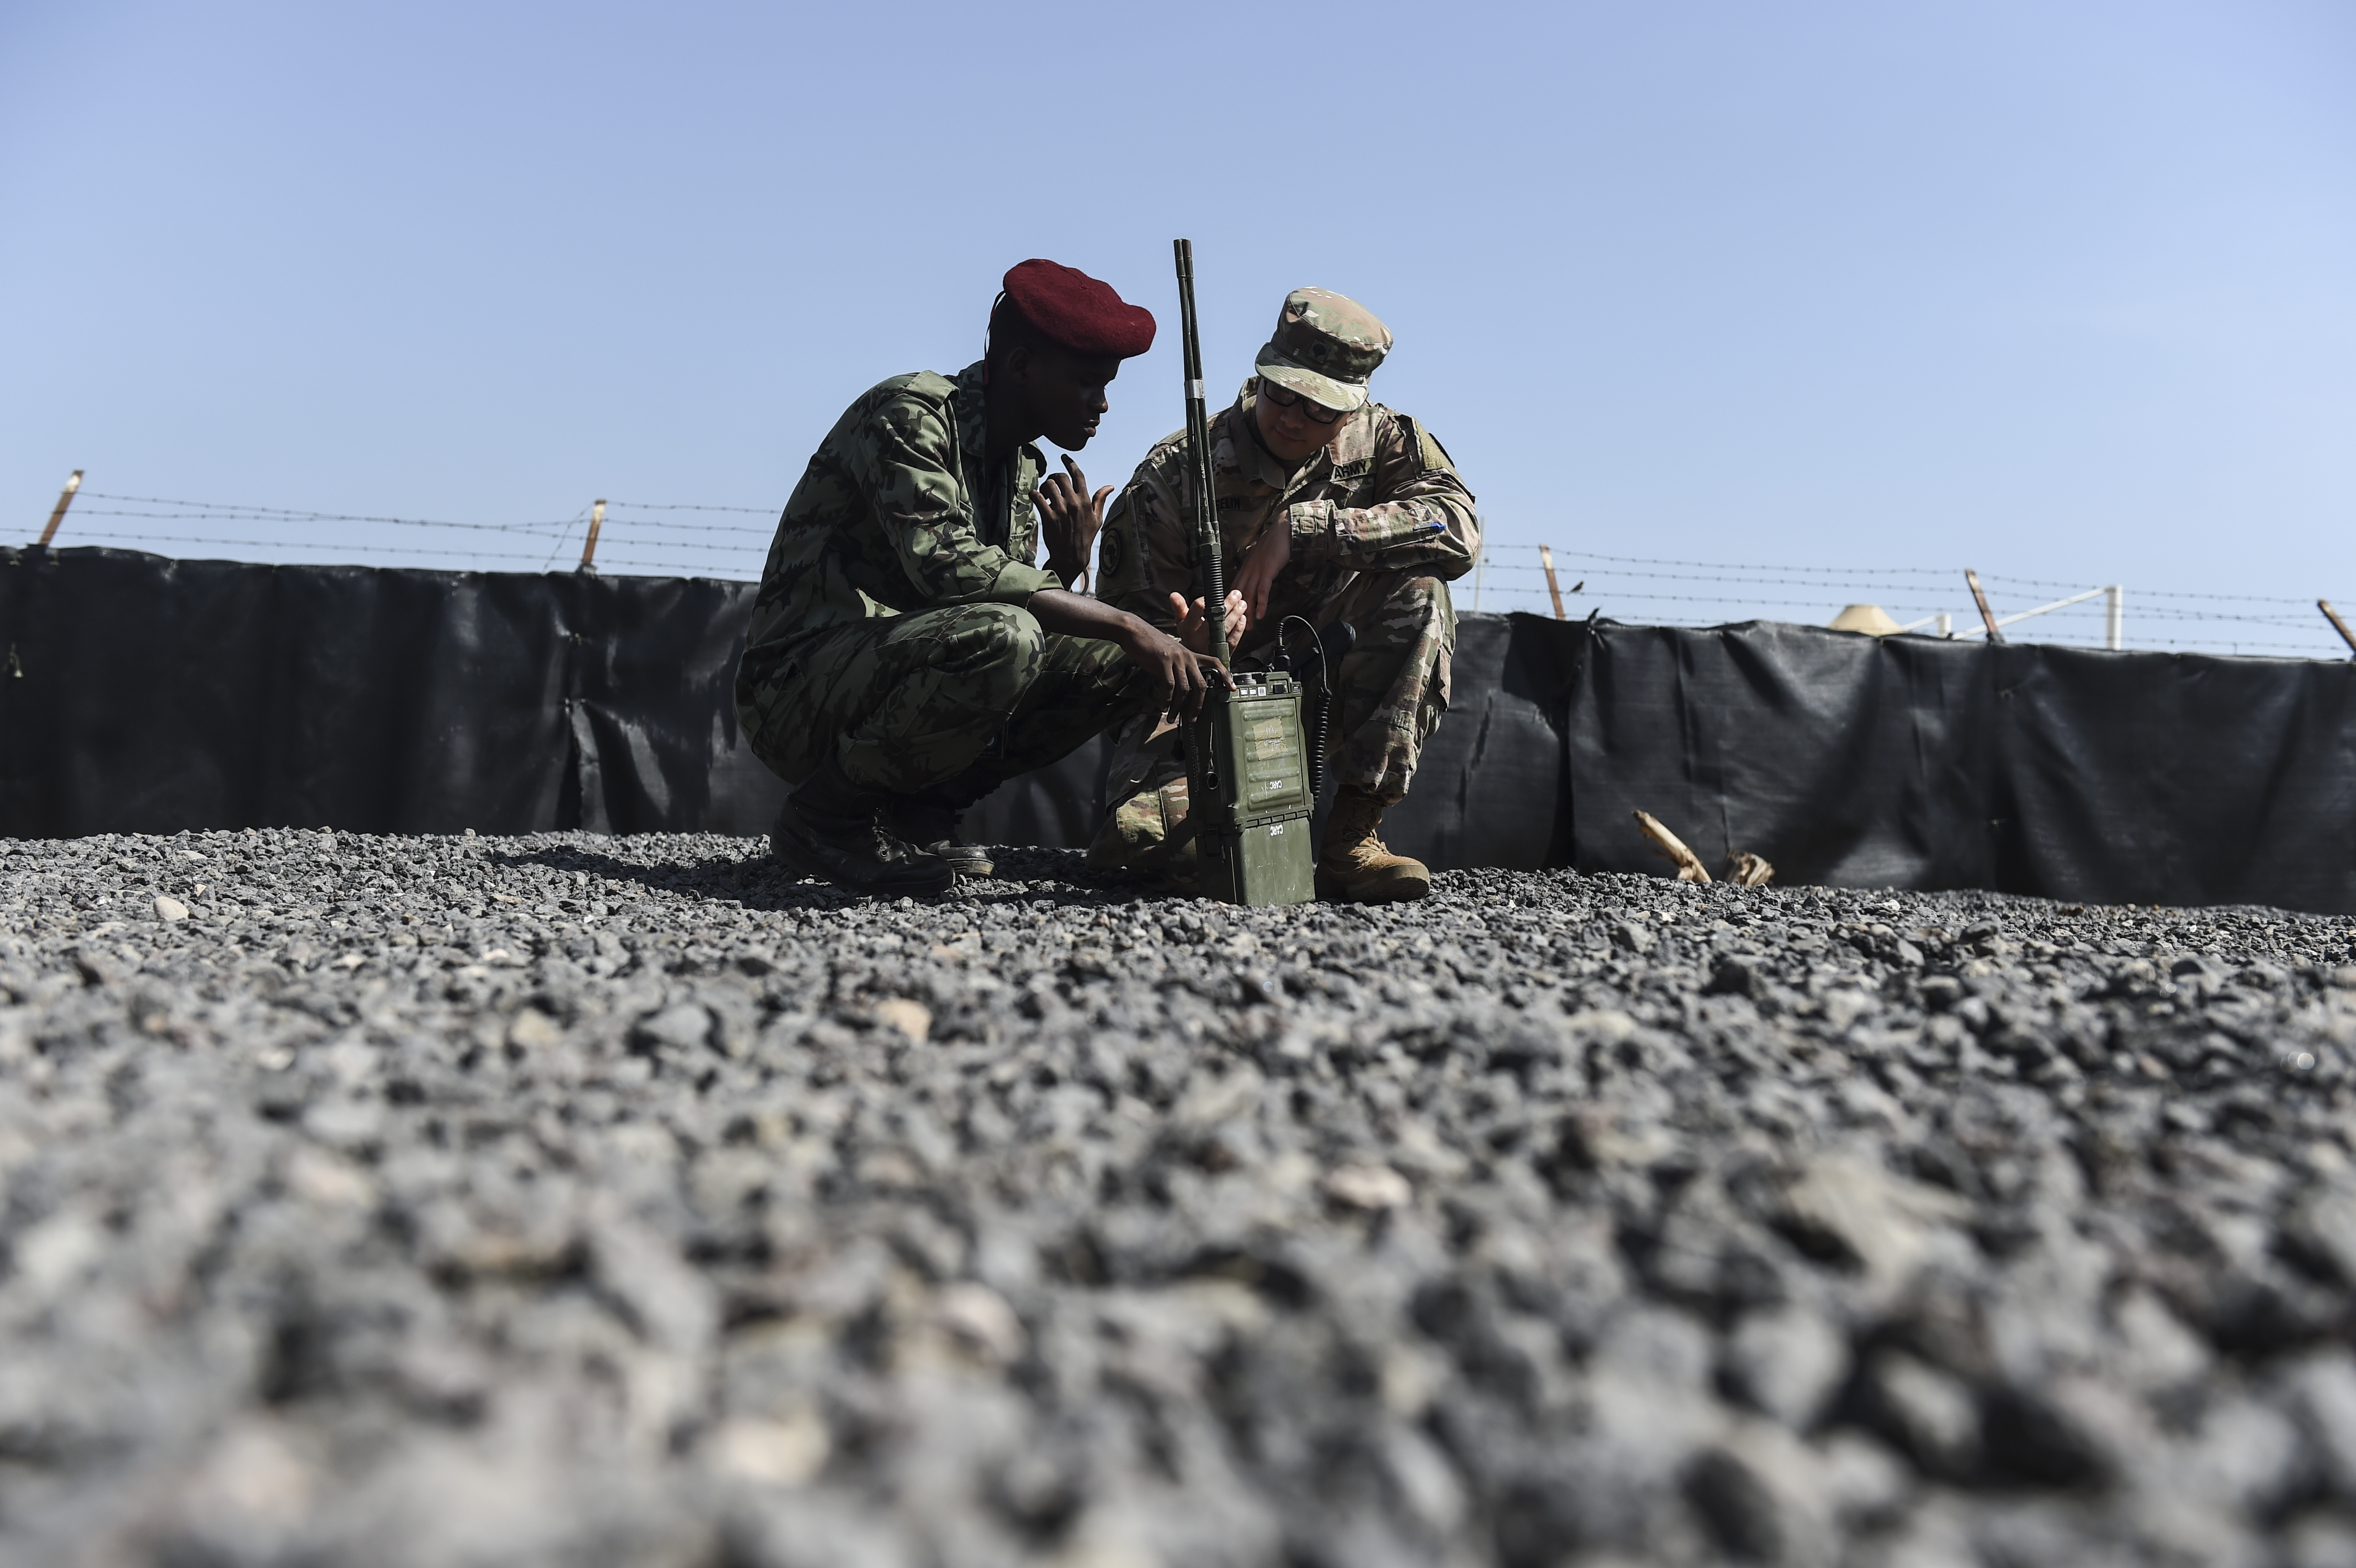 U.S. Army Spc. Matthew Jousselin, a radio operator assigned to the Combined Joint Task Force-Horn of Africa communications directorate, assists a member of the Djibouti Armed Forces with a hands-on demonstration during a three-day best practices sharing session with Djibouti Armed Forces at Camp Lemonnier, Oct. 3, 2017. Best-practice sharing events like these help East African partners to strengthen their defense capabilities, capacity, and coordination to enable them to provide for their own security, combat transnational threats, and respond to crises.  (U.S. Air Force photo by Staff Sgt. Eboni Prince)